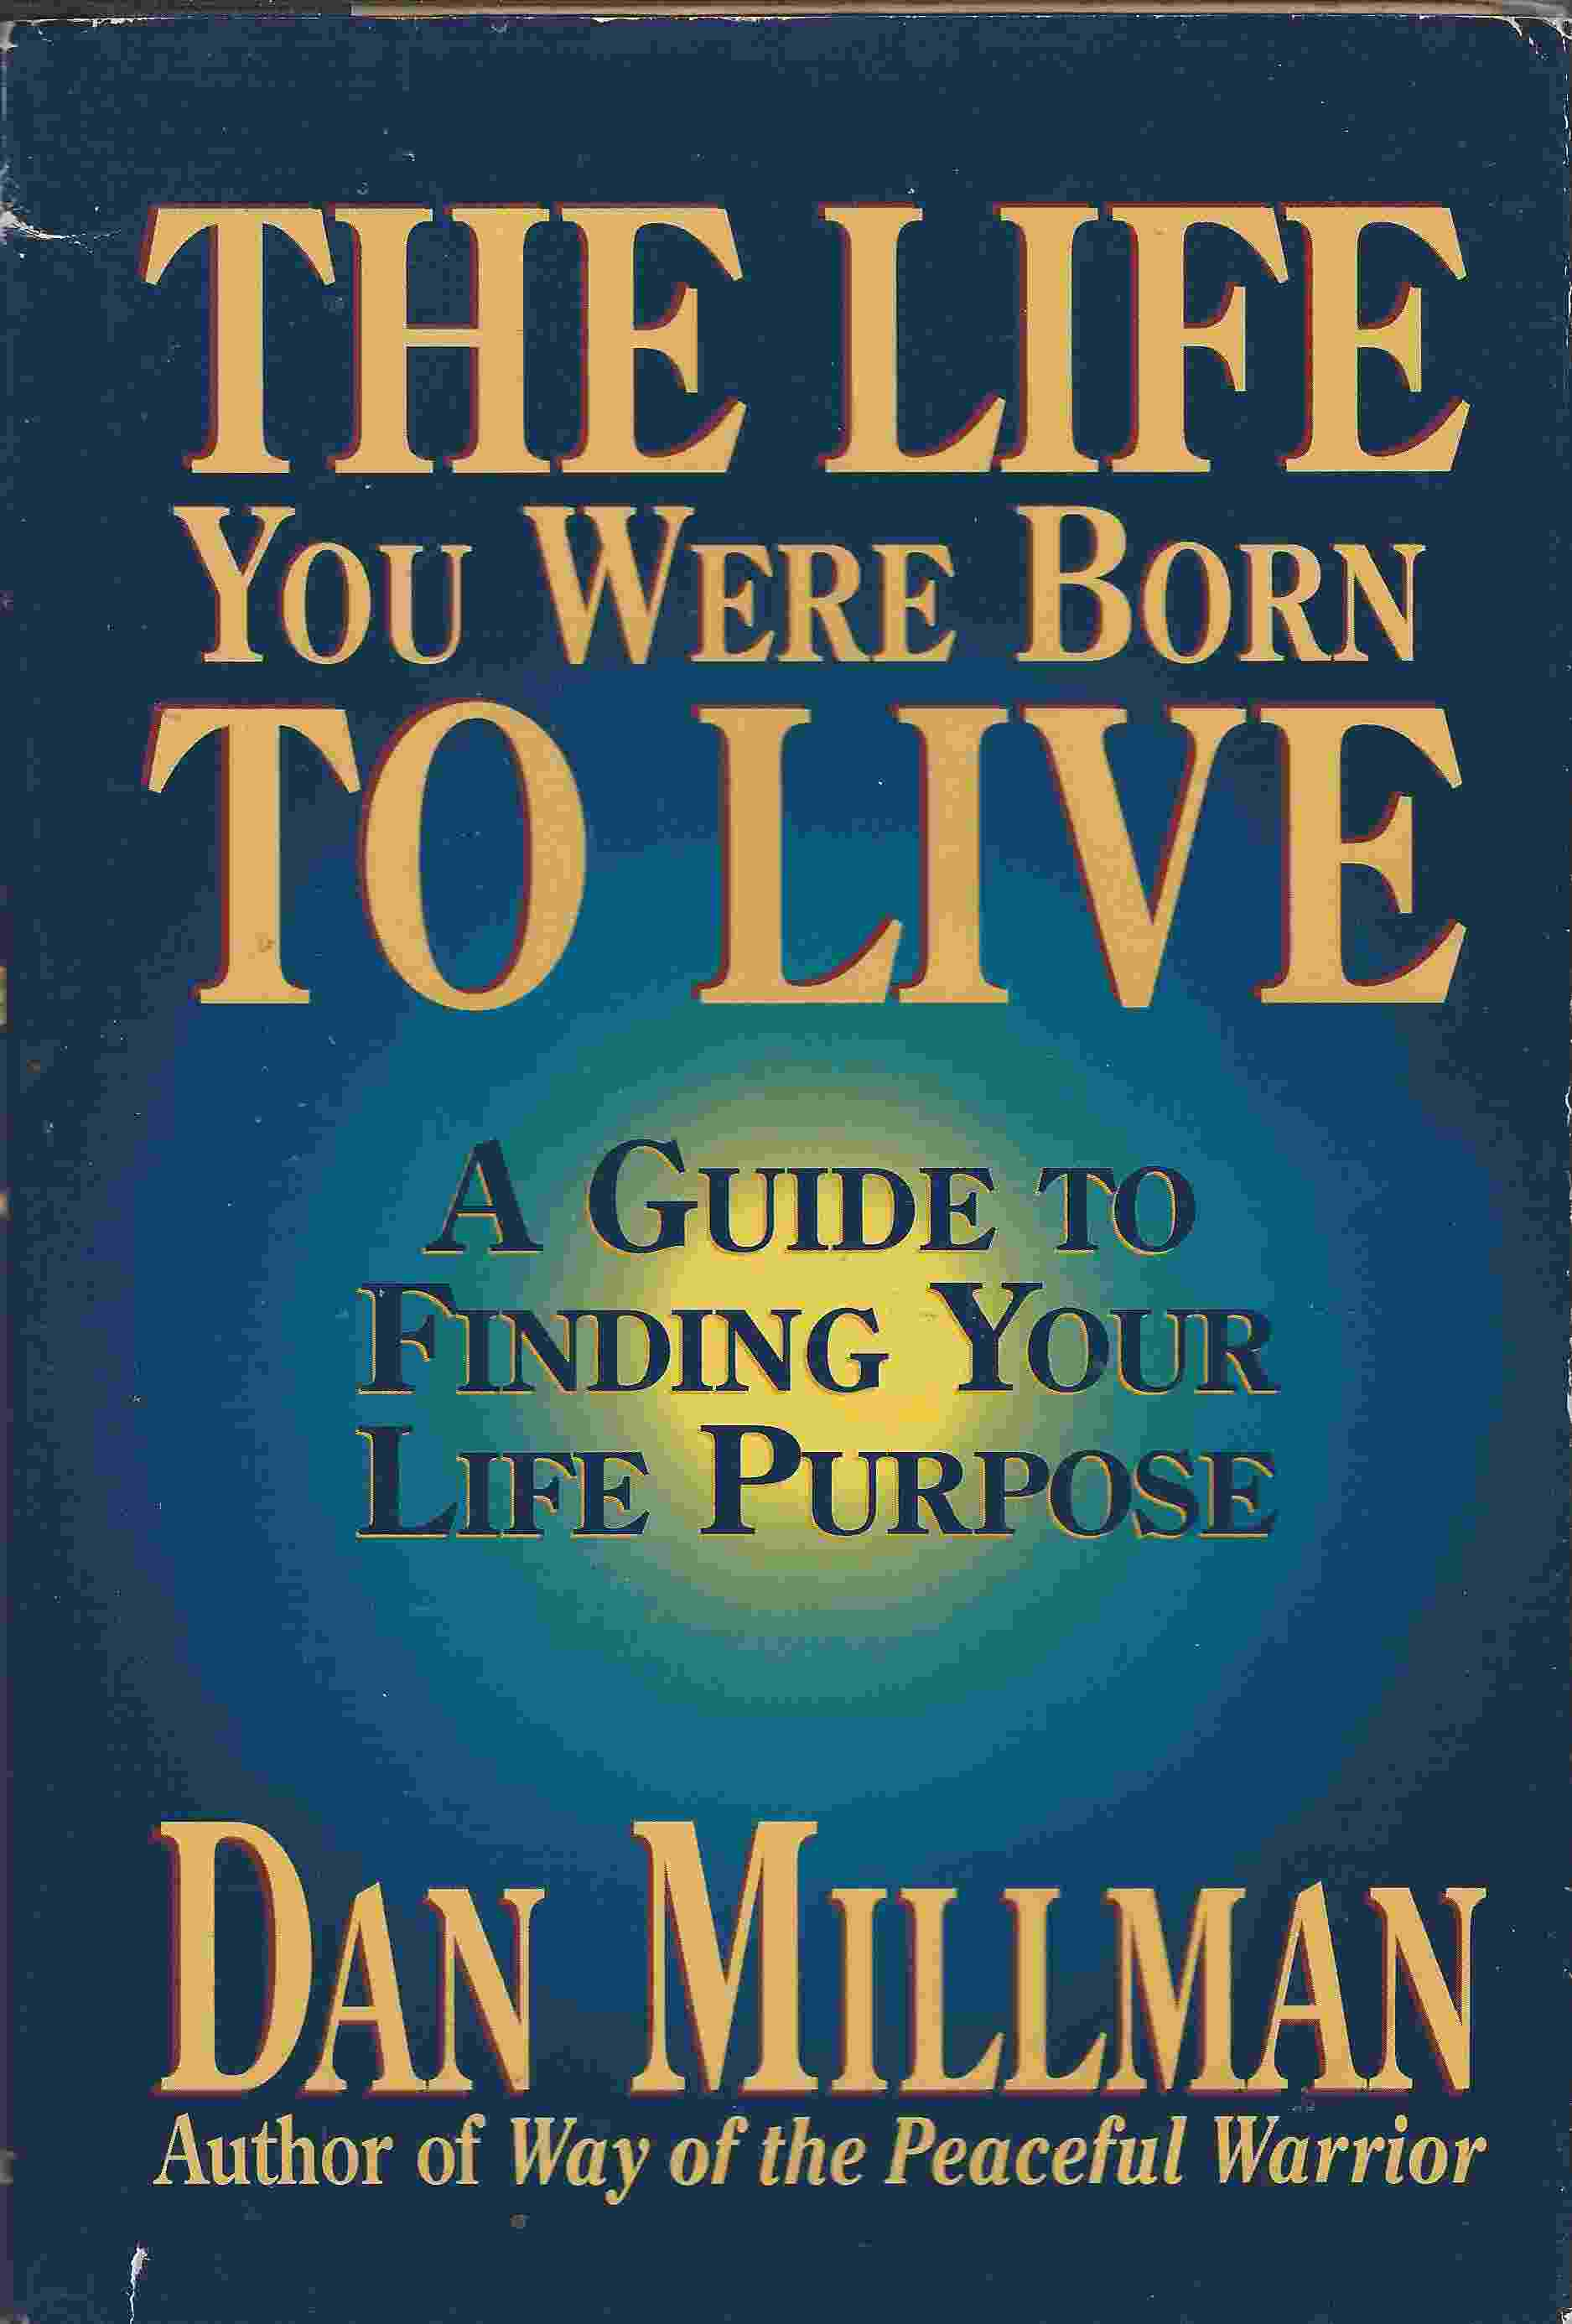 Image for THE LIFE YOU WERE BORN TO LIVE  A Guide to Finding Your Life Purpose